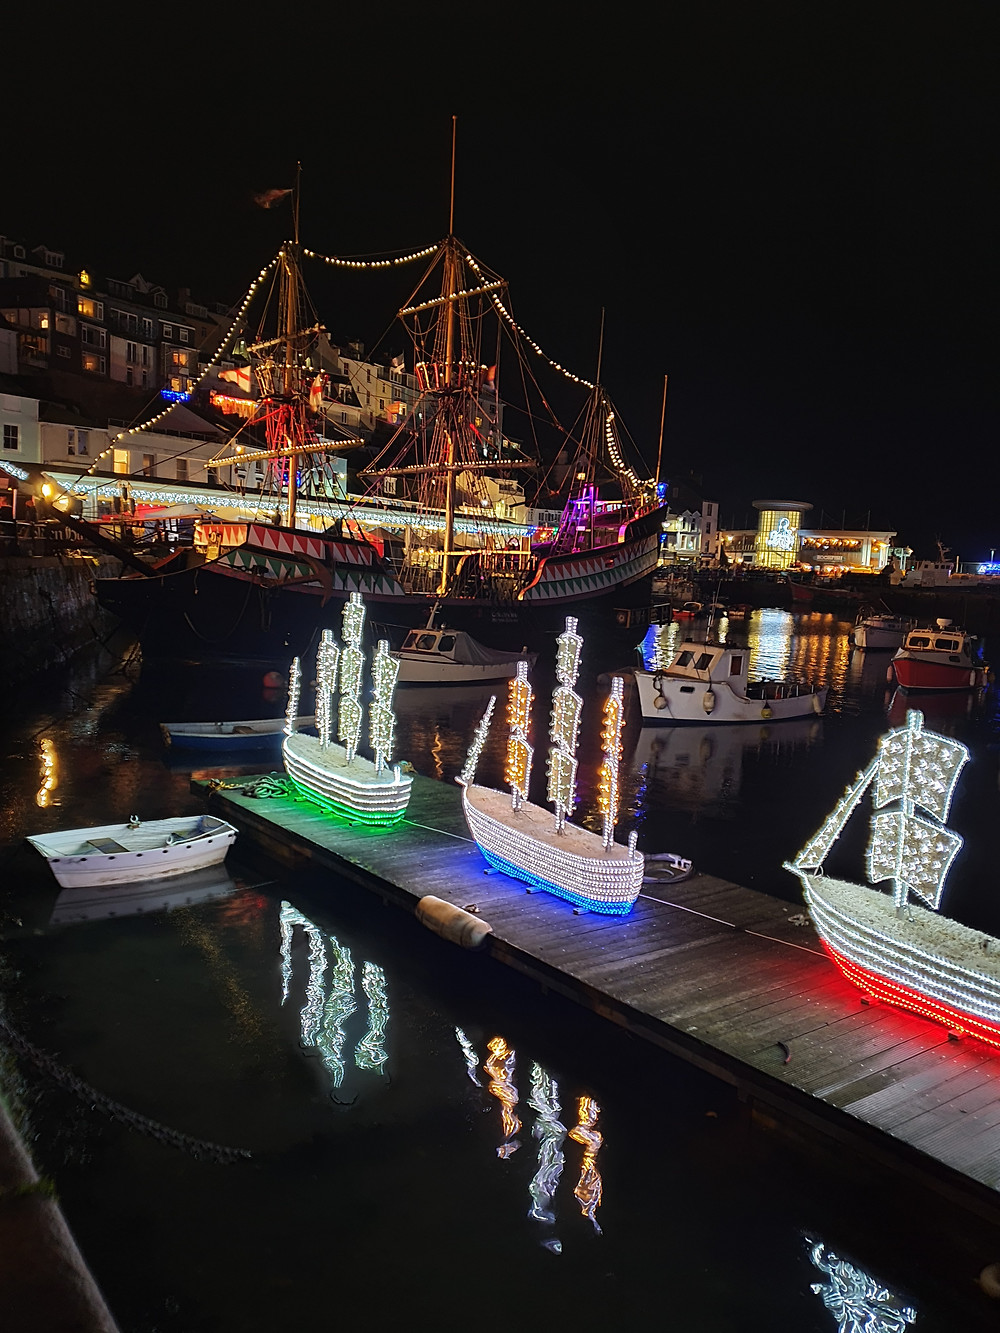 Brixham's Golden Hind and Three Ships Christmas lights